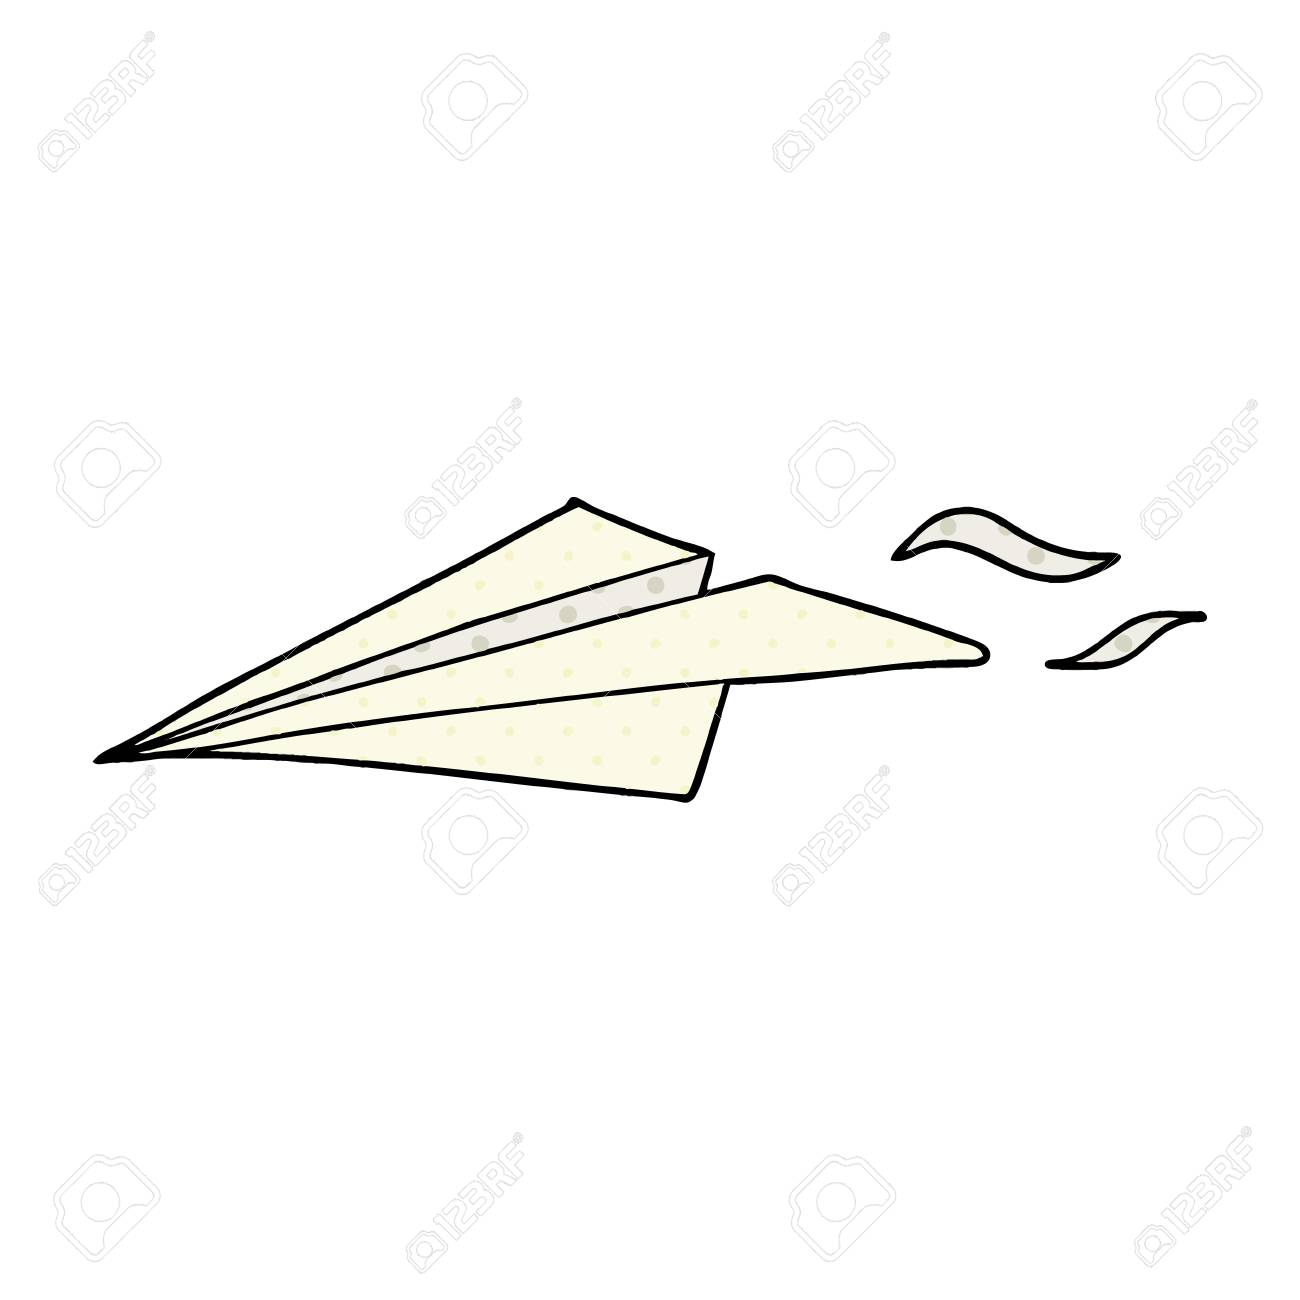 cartoon paper airplane isolated on white background royalty free rh 123rf com cartoon paper plane Cartoon Throwing Paper Airplane Drawing